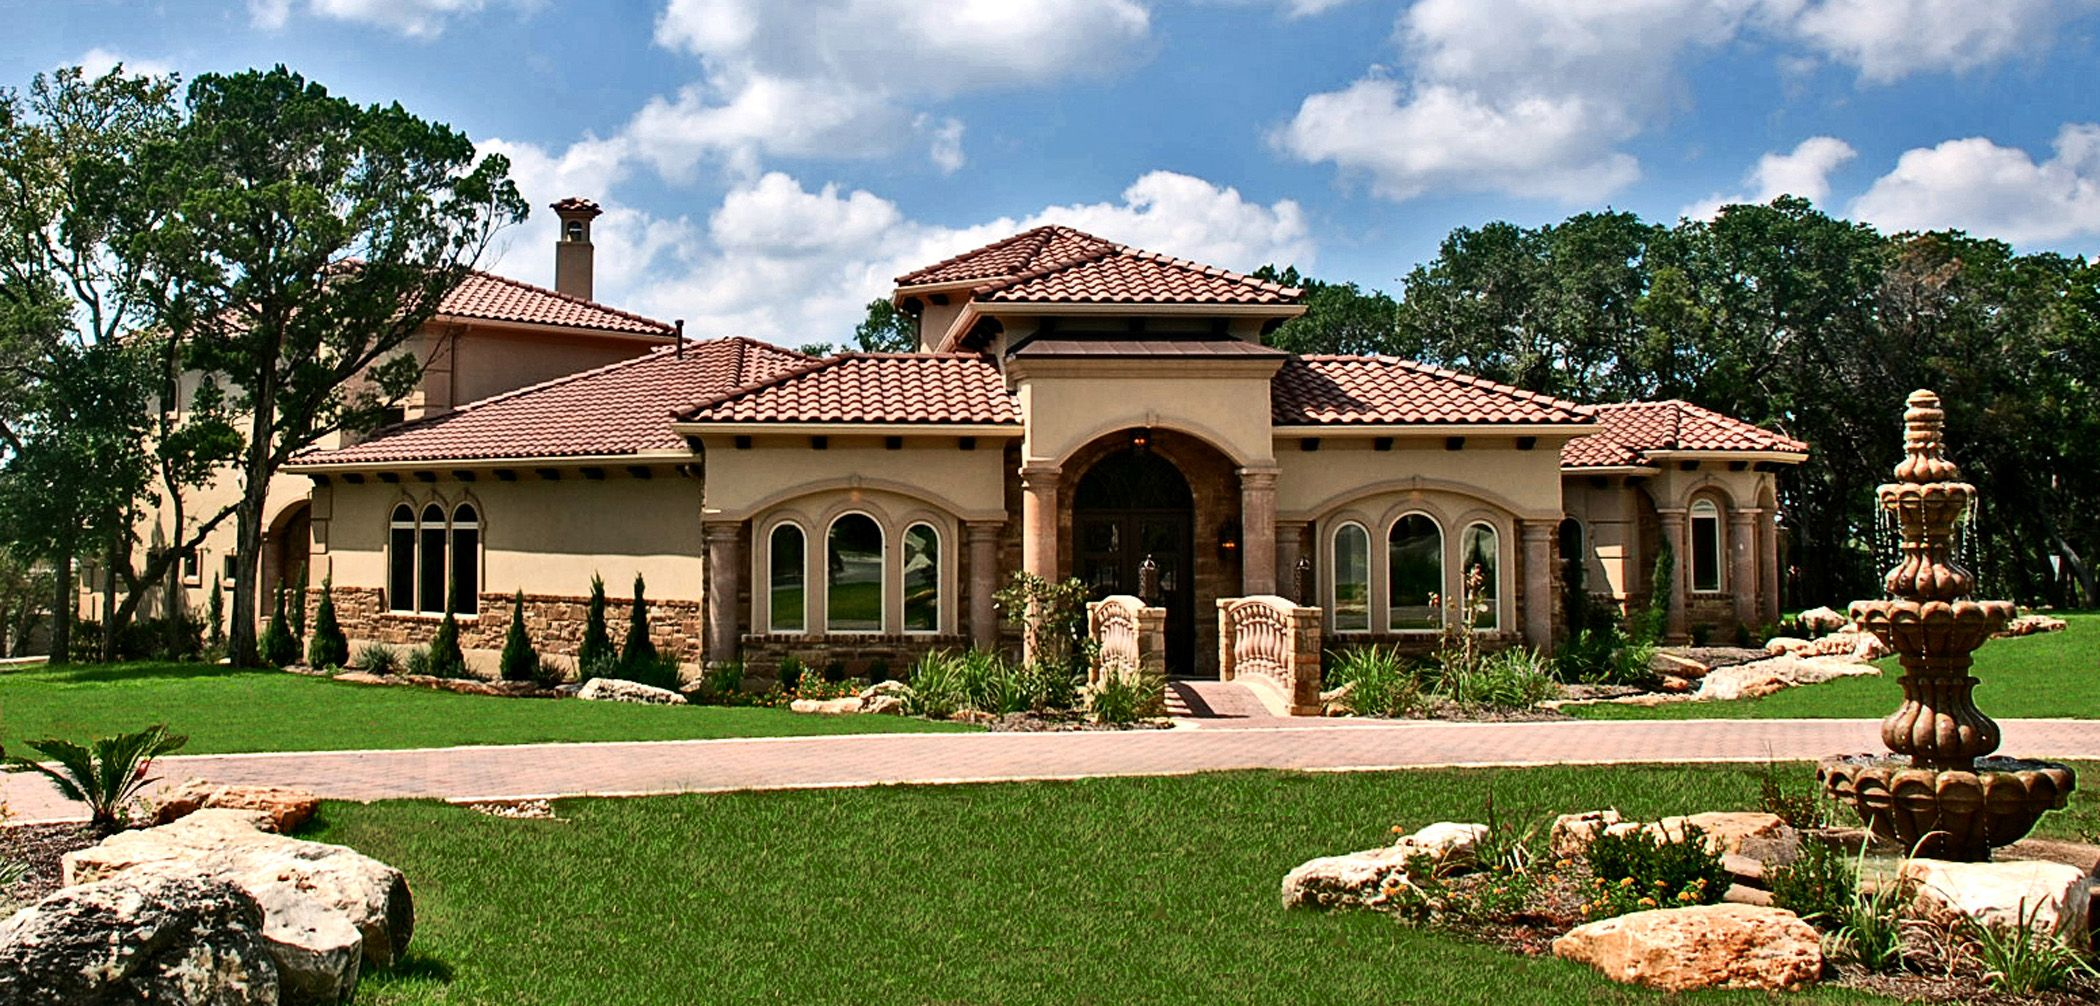 Lakeway texas tuscan front elevation by zbranek holt for Custom mediterranean homes